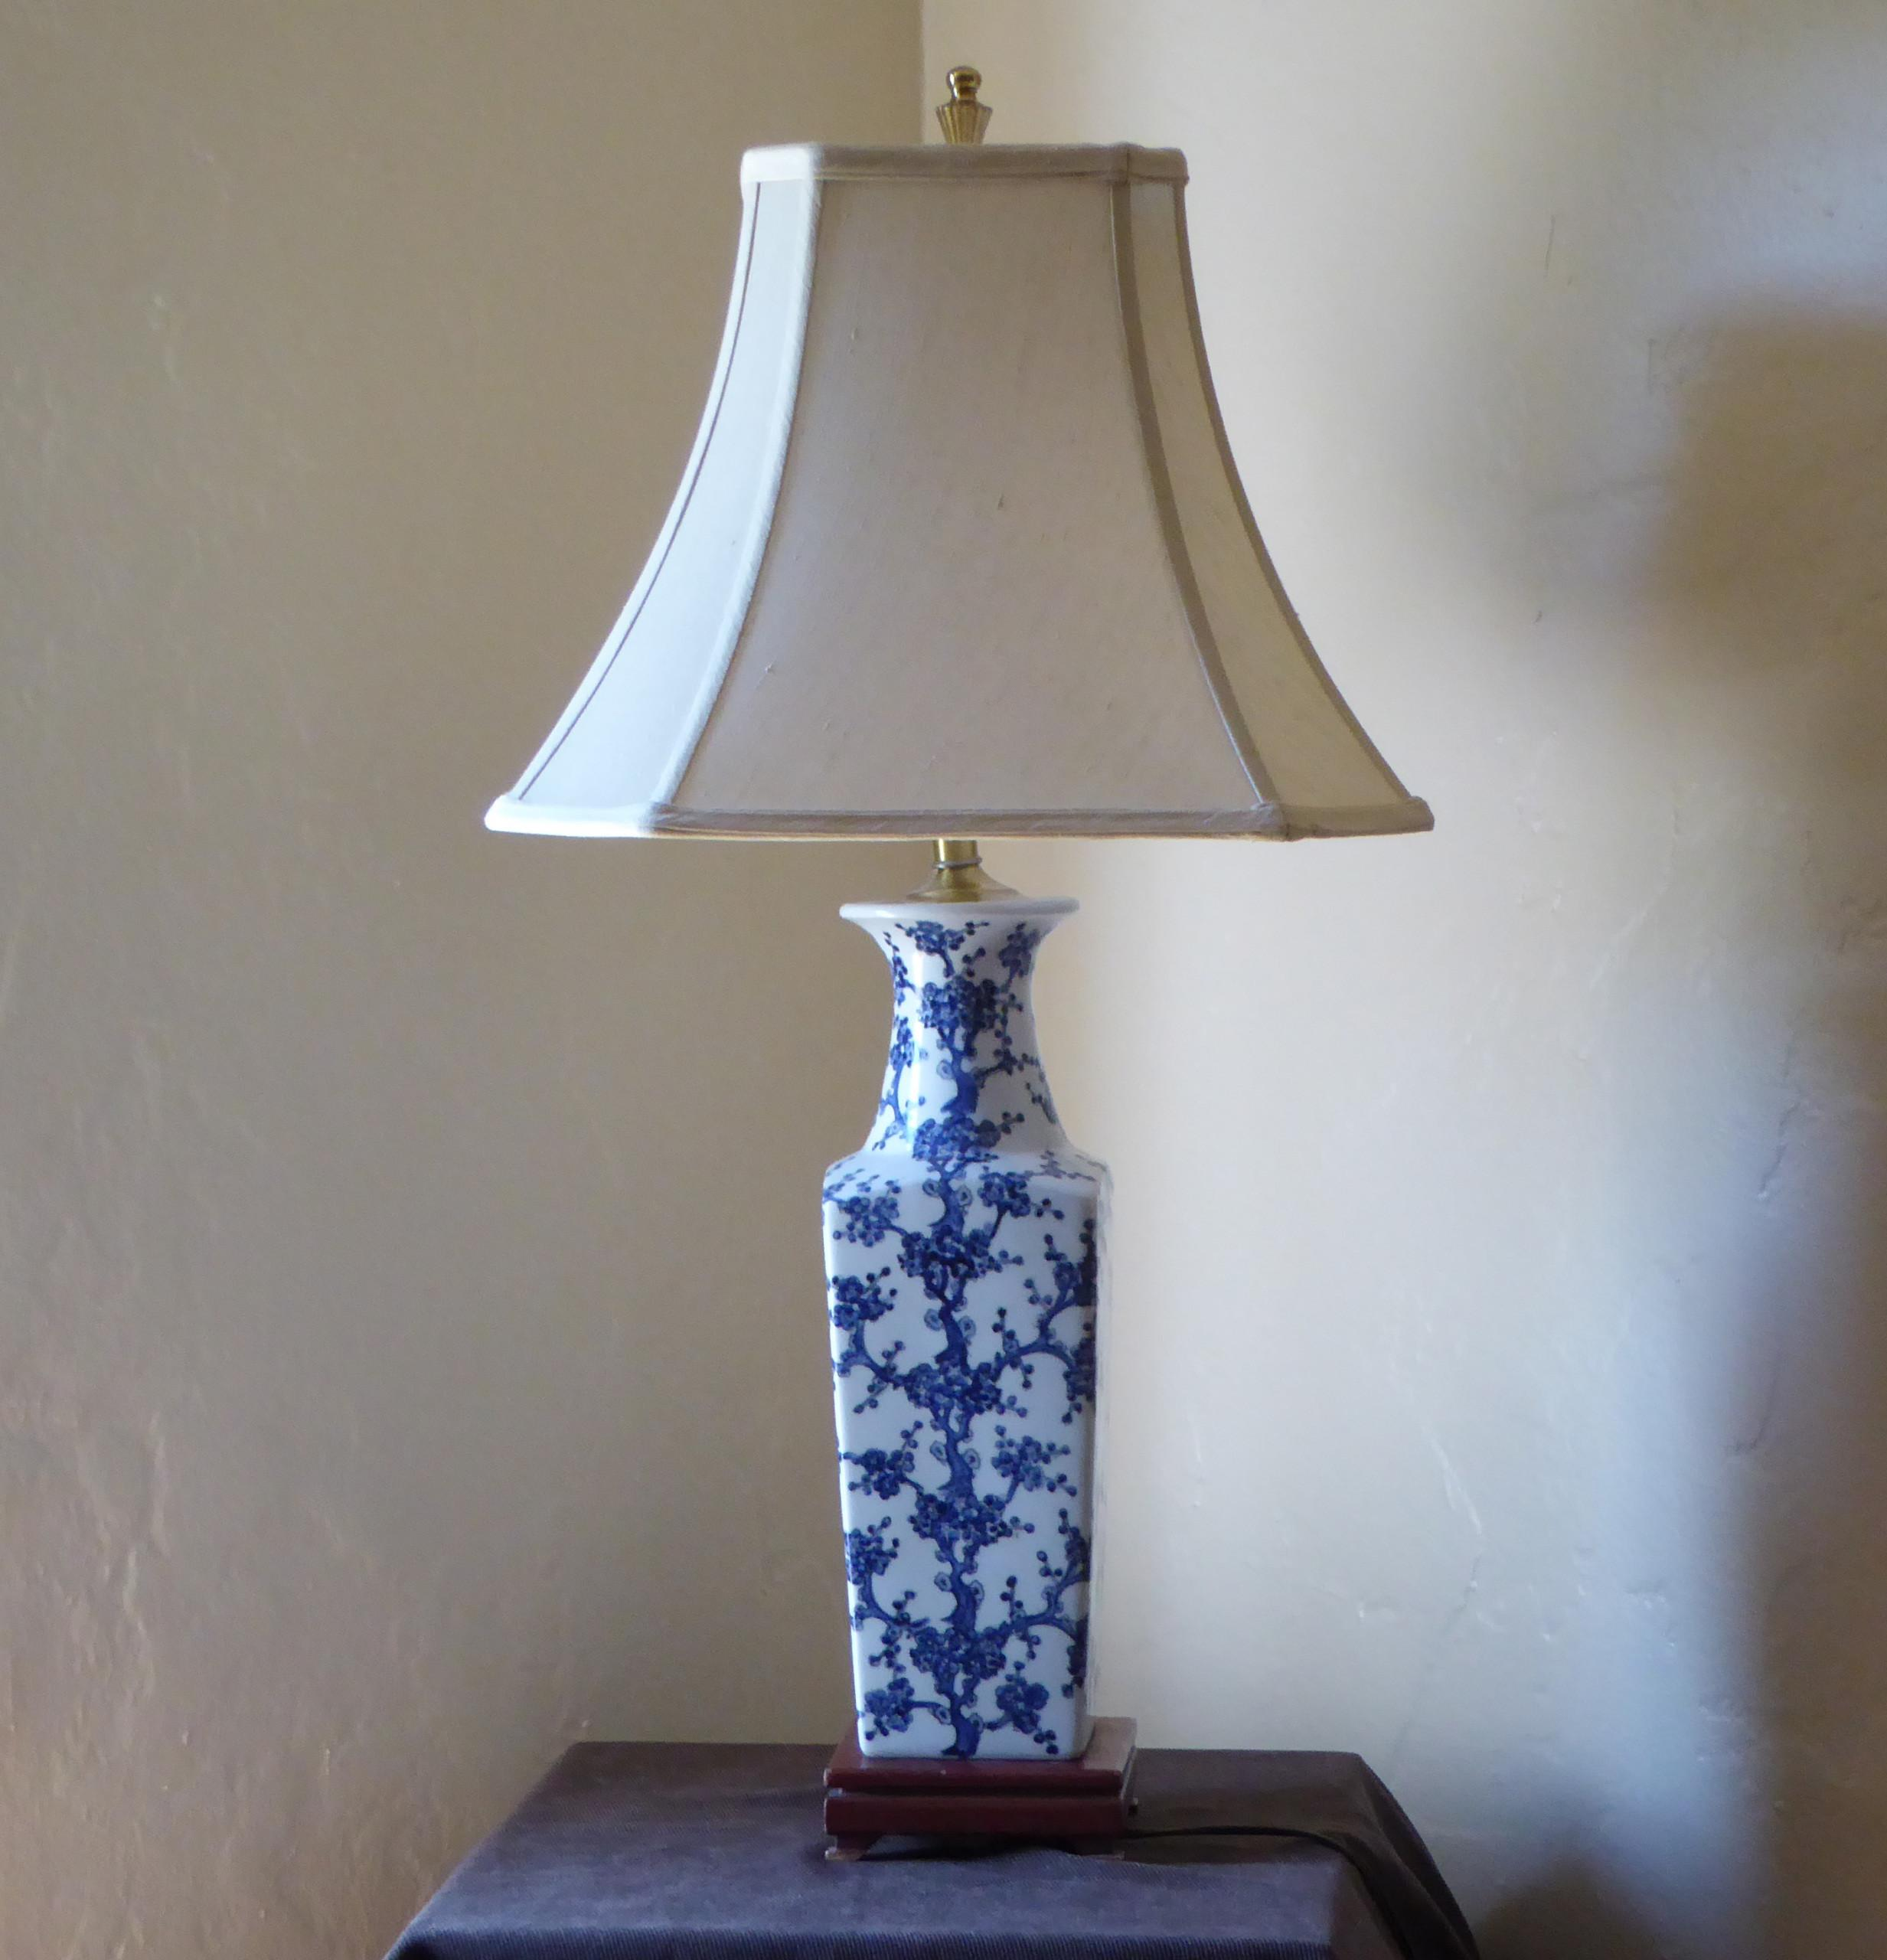 Blue White Ceramic Vase Table Lamp